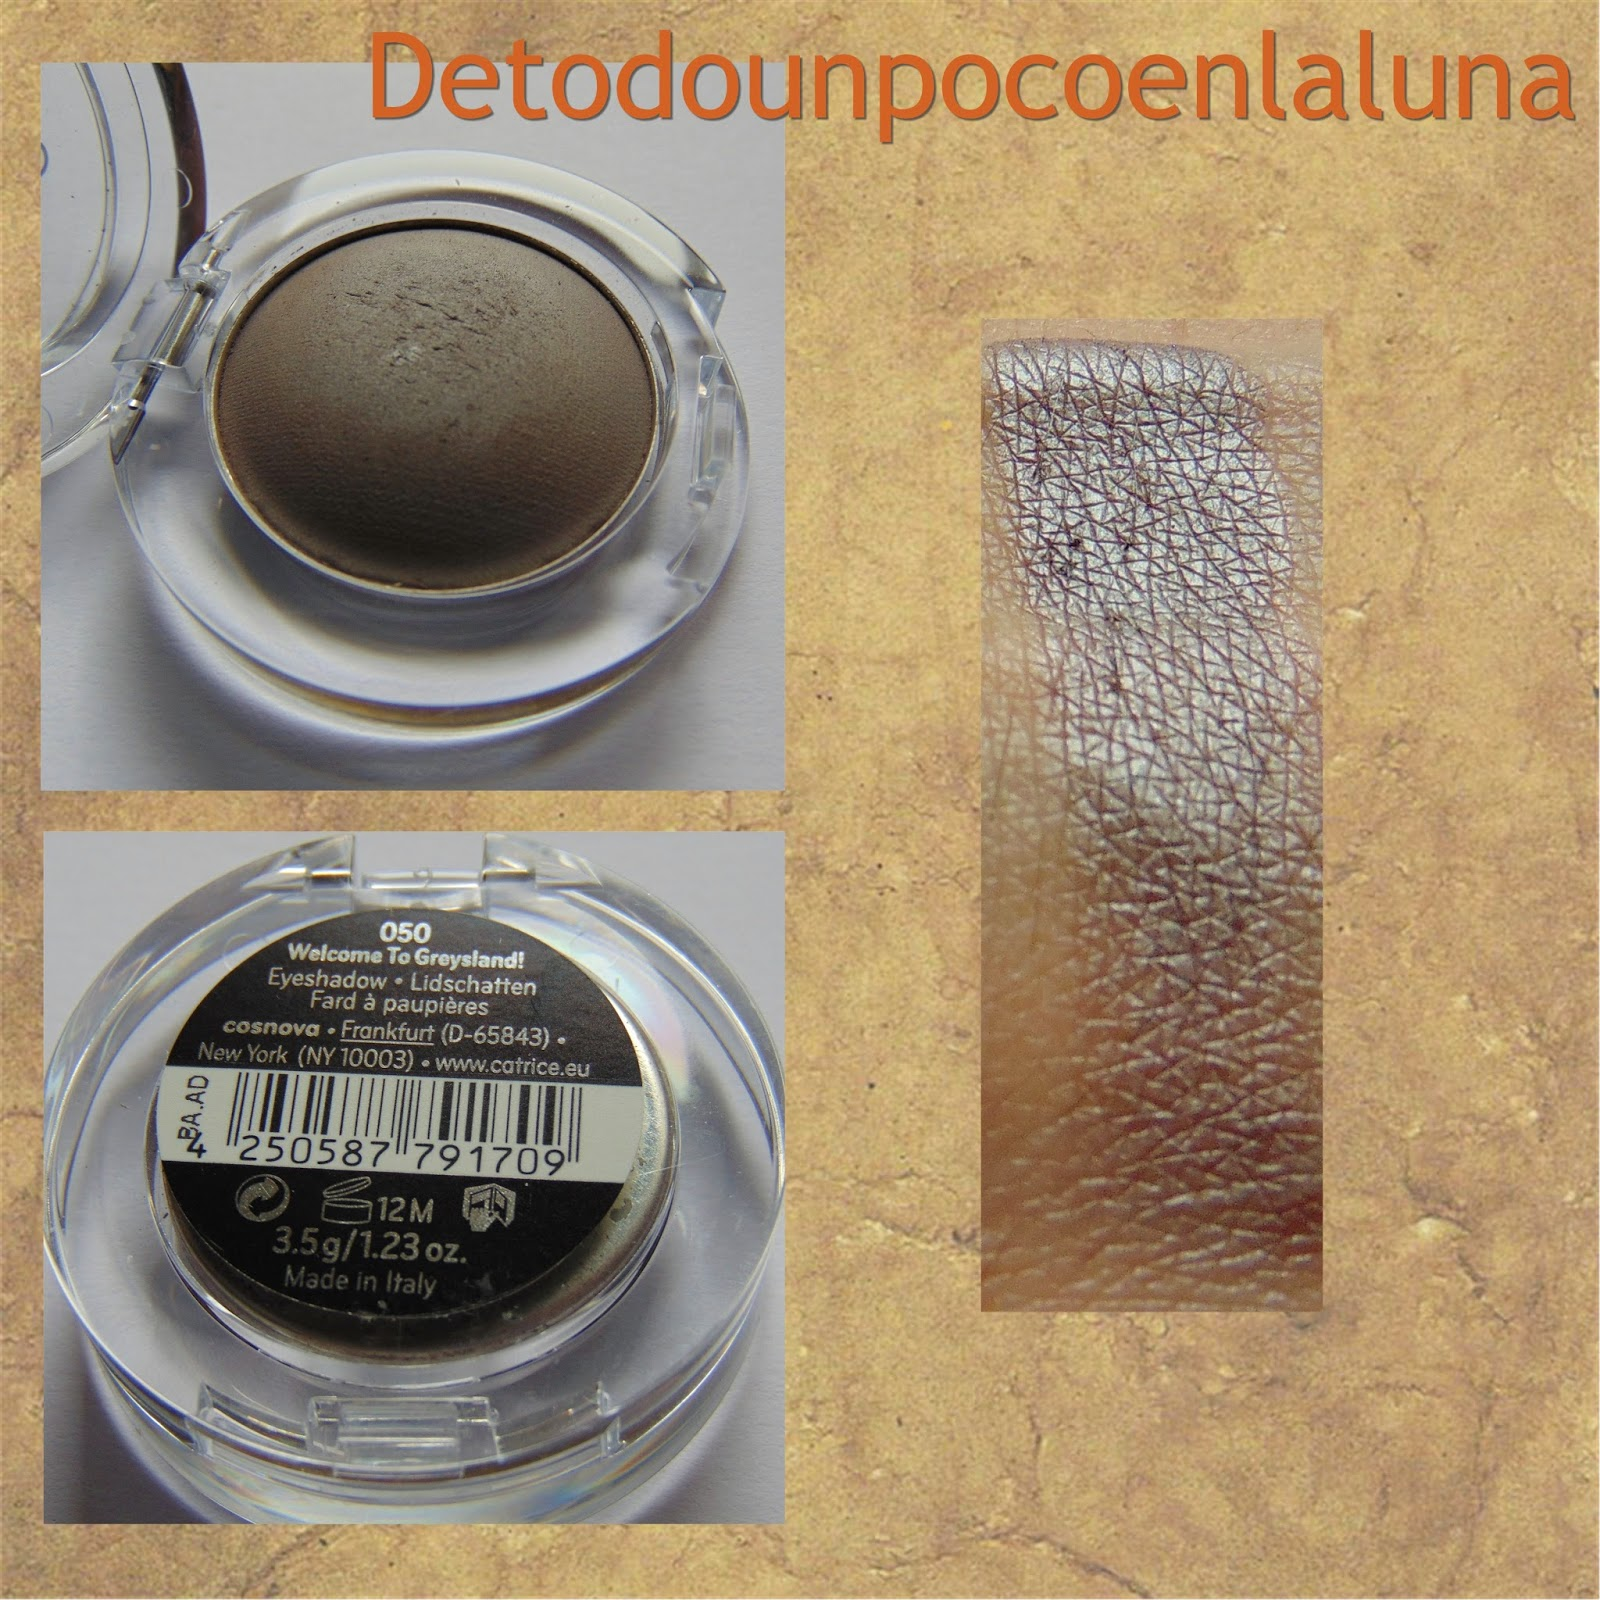 050 Welcome to Greysland Sombras Velvet Matt Eyeshadow de Catrice